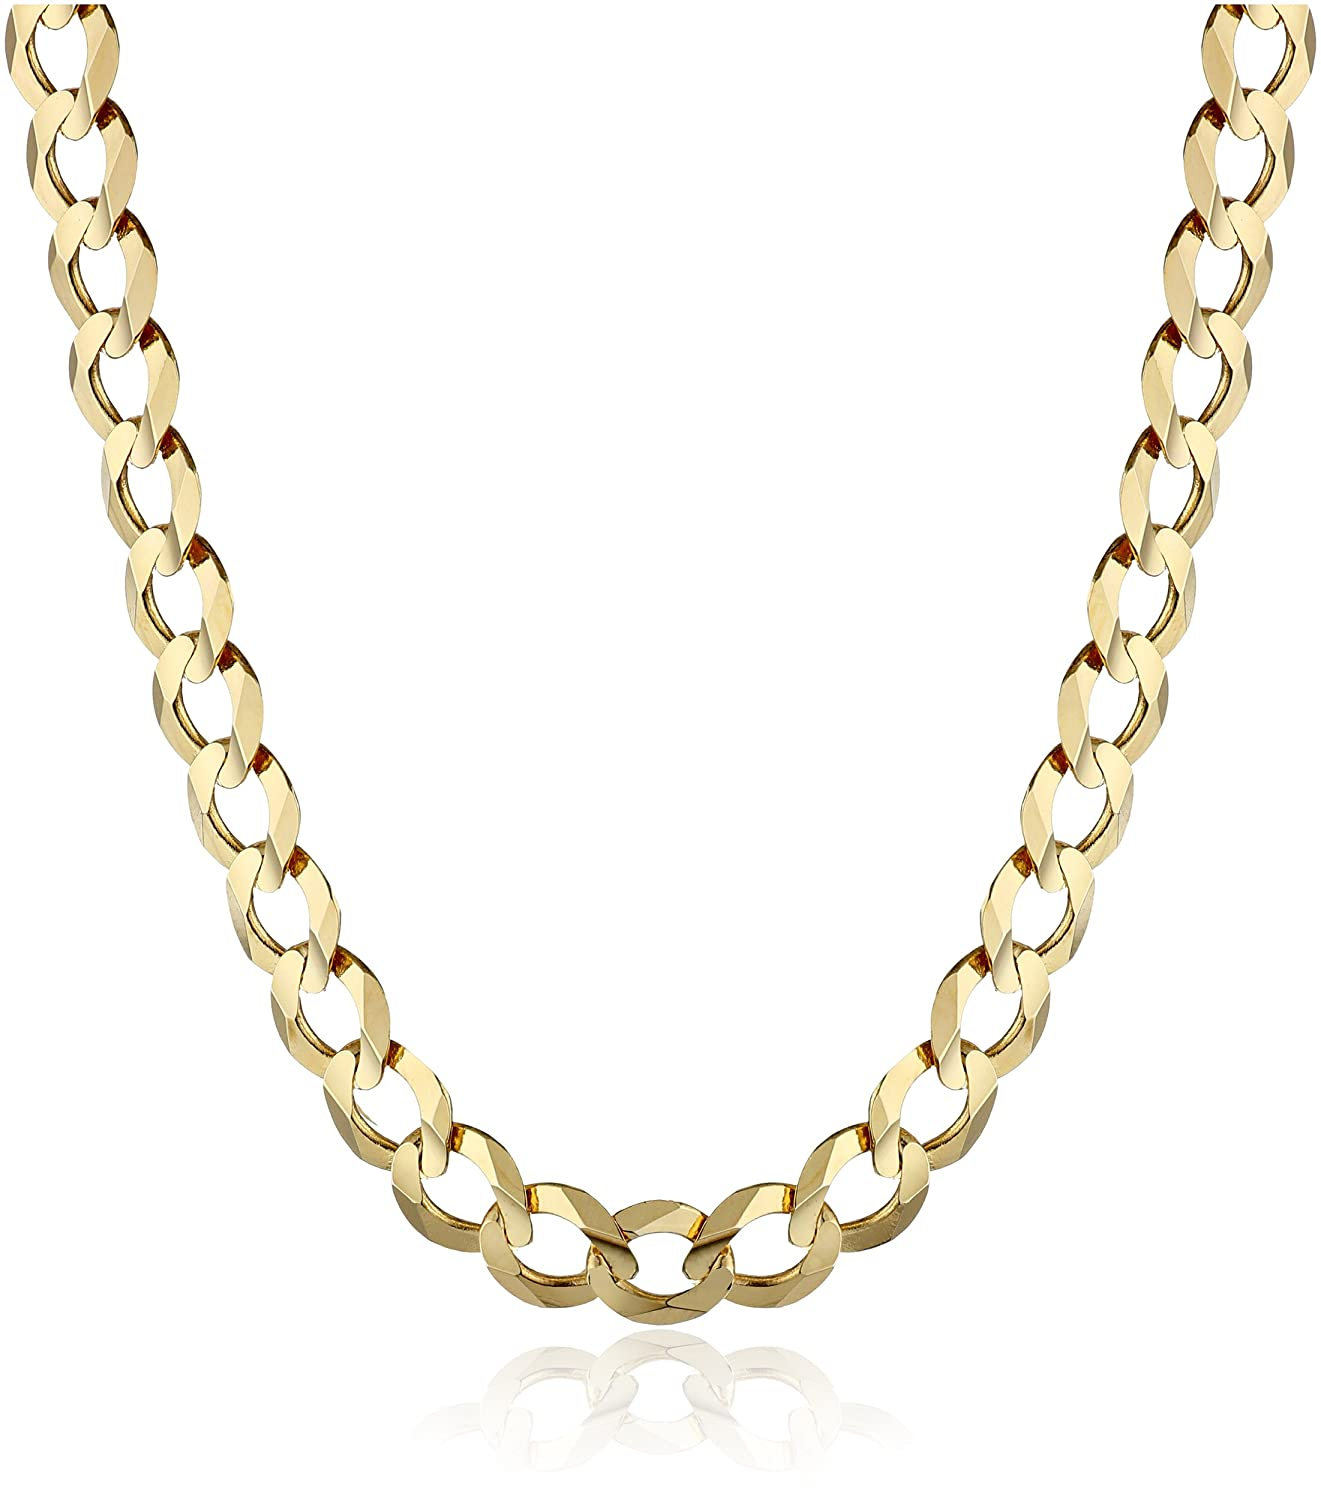 chains gold rose bismark chain img uk product